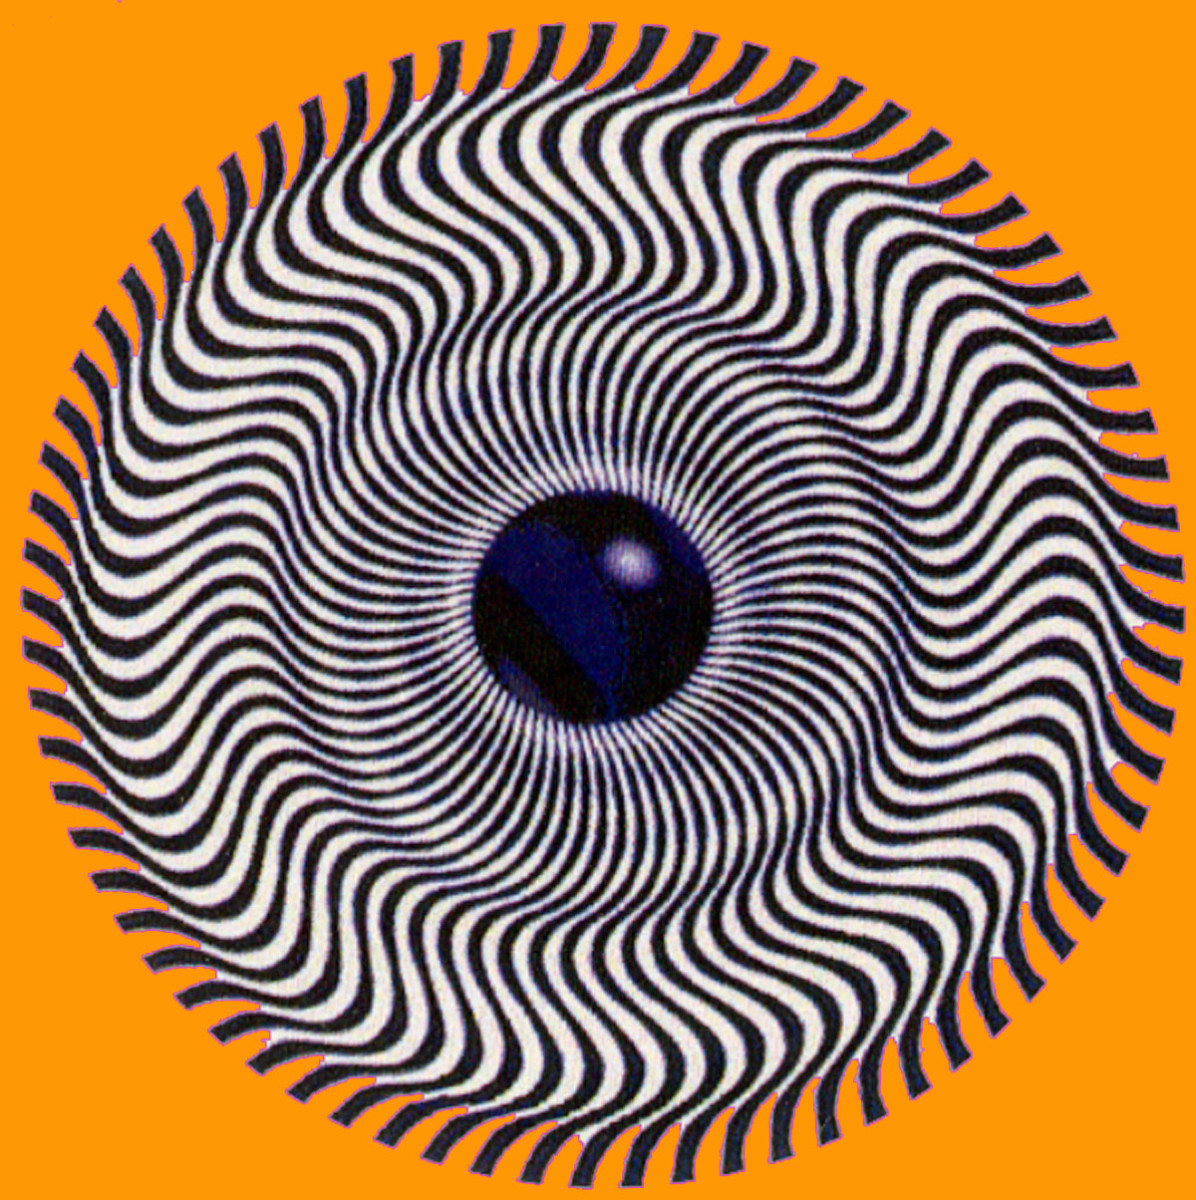 Swirling lines optical illusion from a centre eye